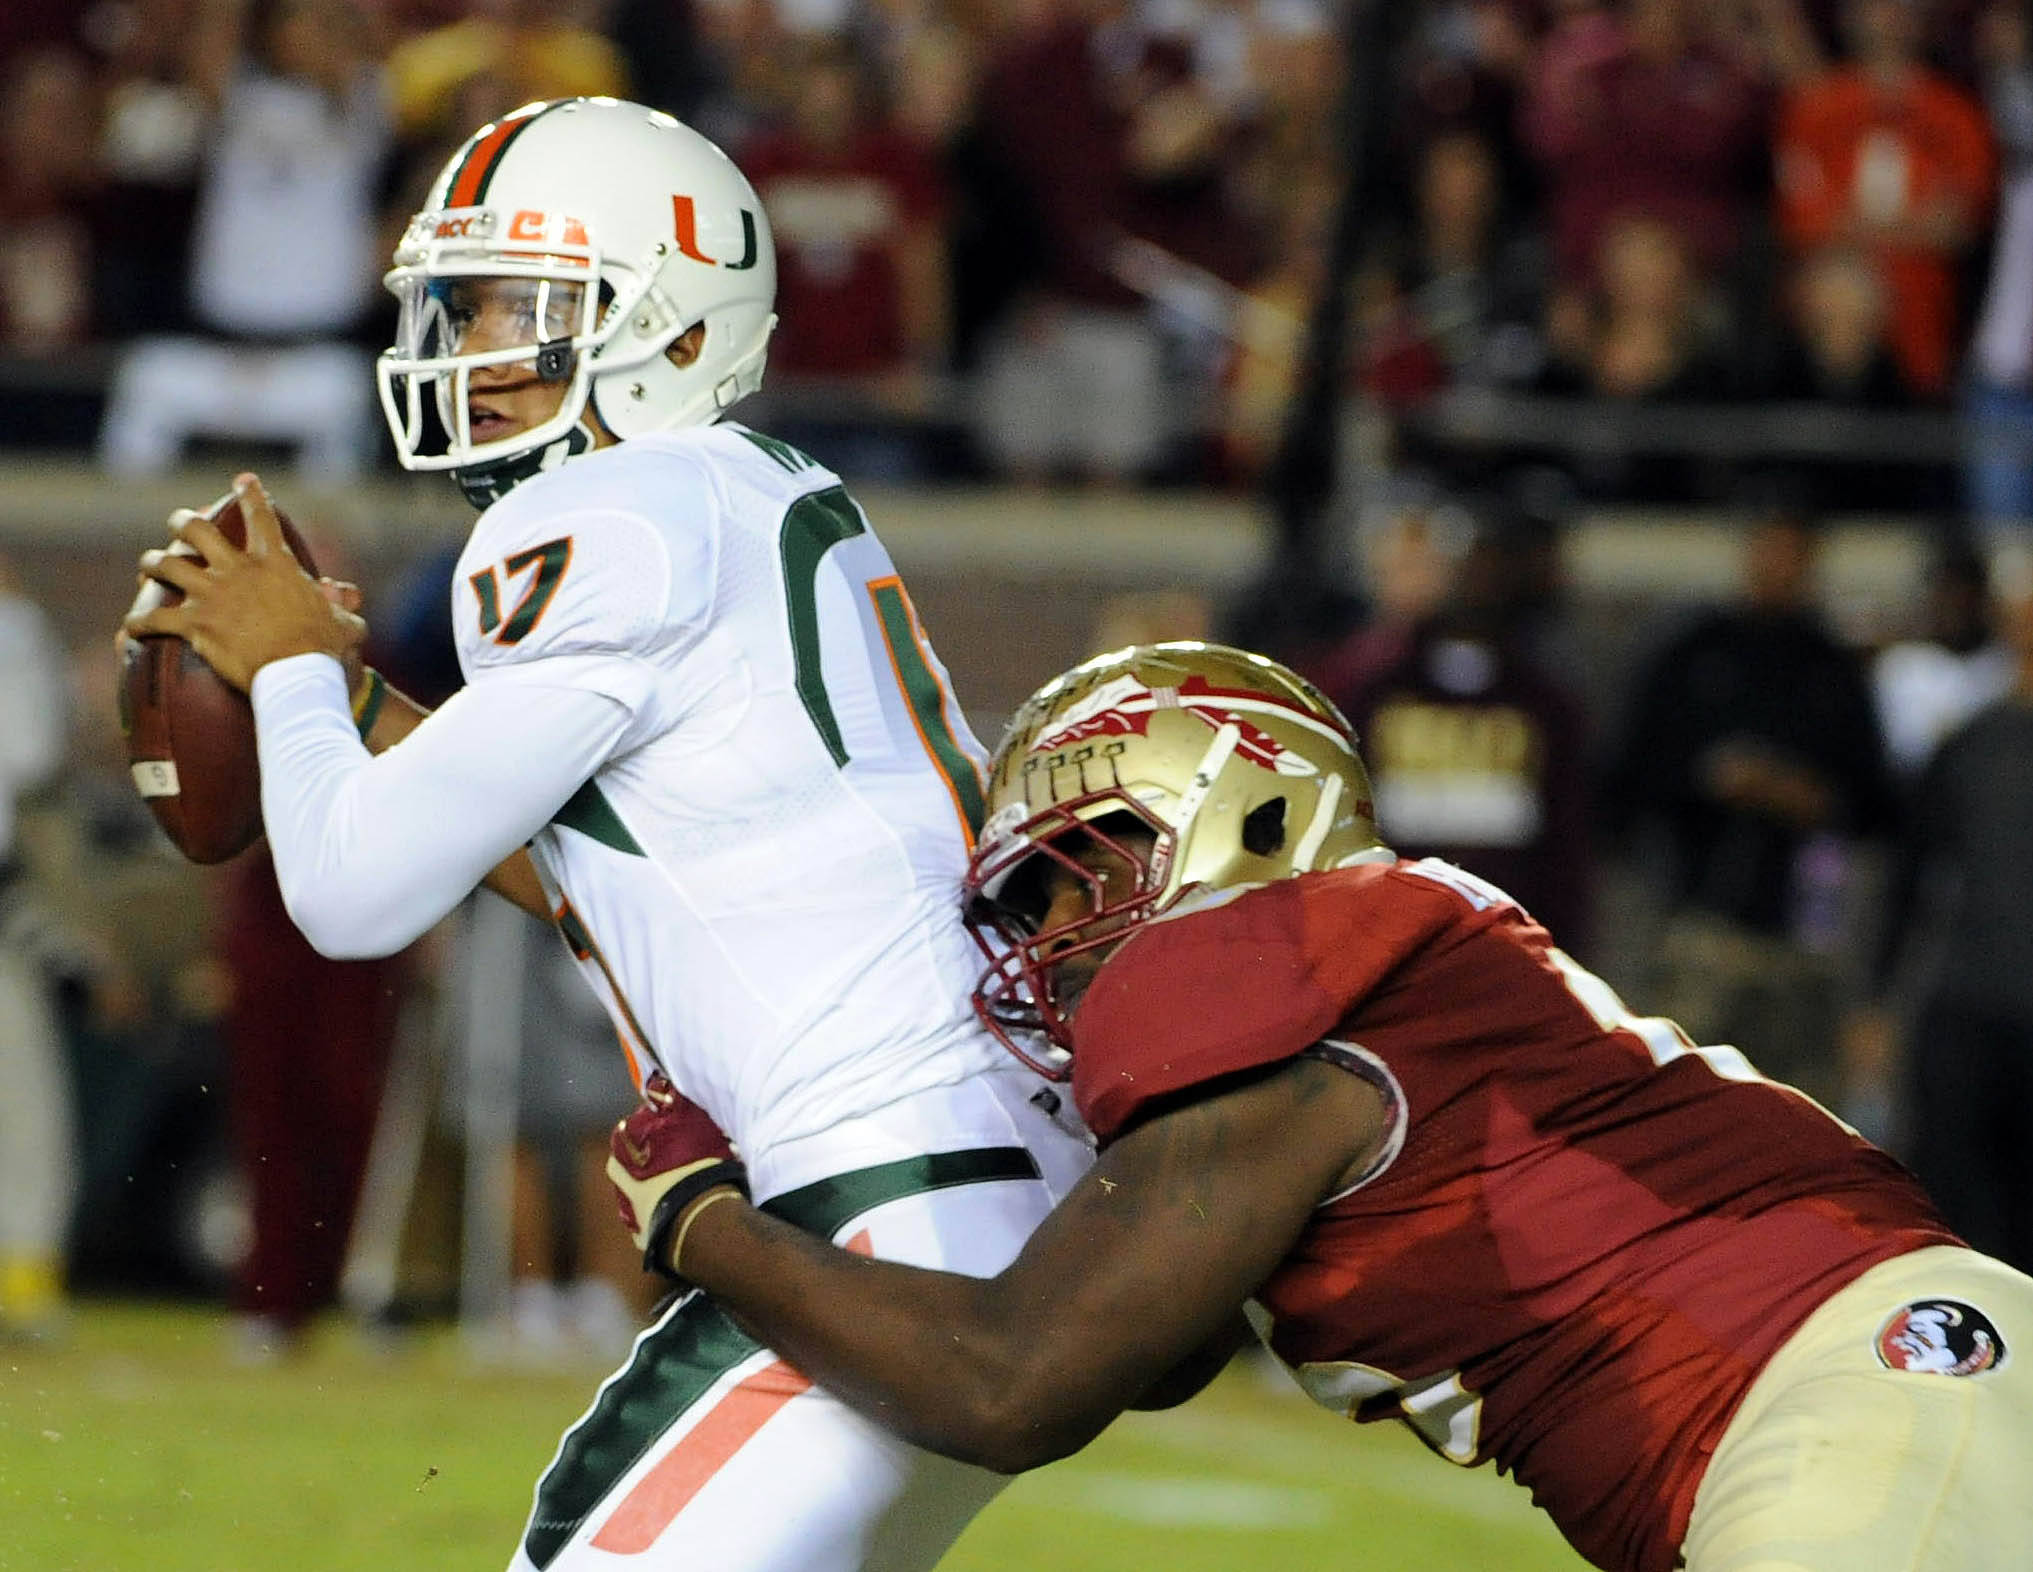 Miami Hurricanes quarterback Stephen Morris (17) is sacked by Florida State Seminoles defensive end Mario Edwards Jr. (15) during the first half at Doak Campbell Stadium. Mandatory Credit: Melina Vastola-USA TODAY Sports